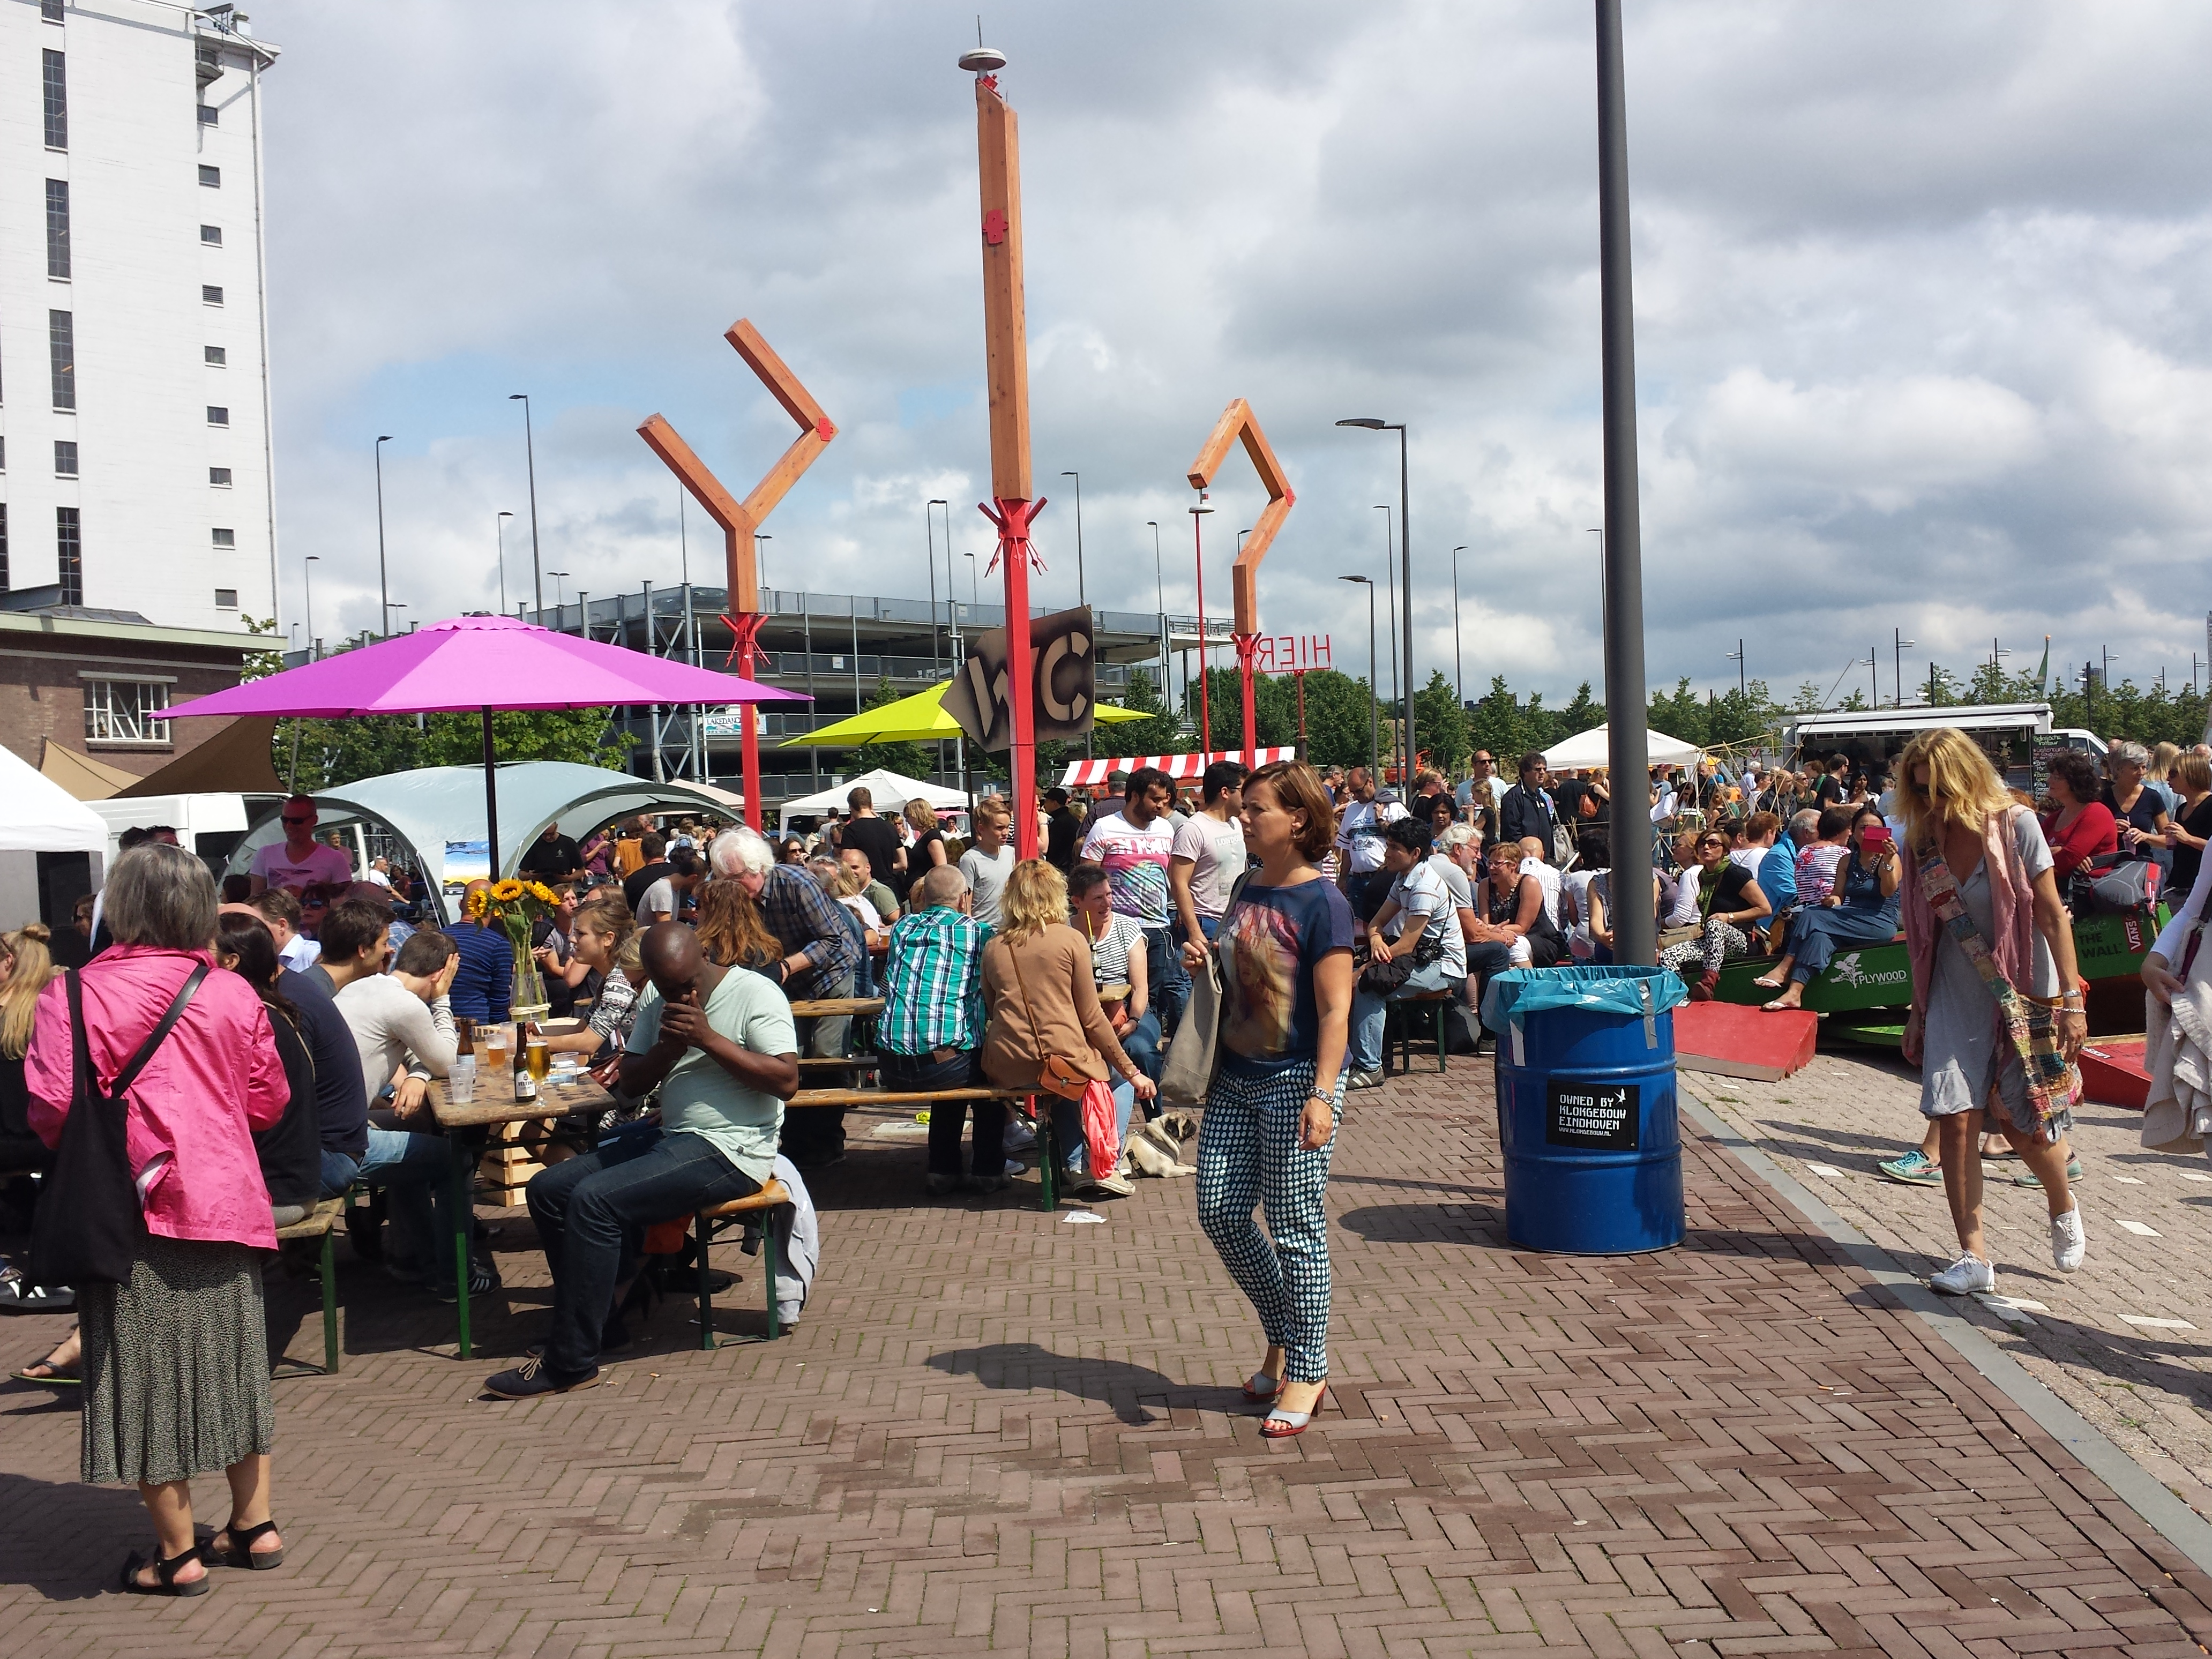 Went to a 'Feel Good Market' today with lot's of nice healthy food and music. Good vibes, a happy day!